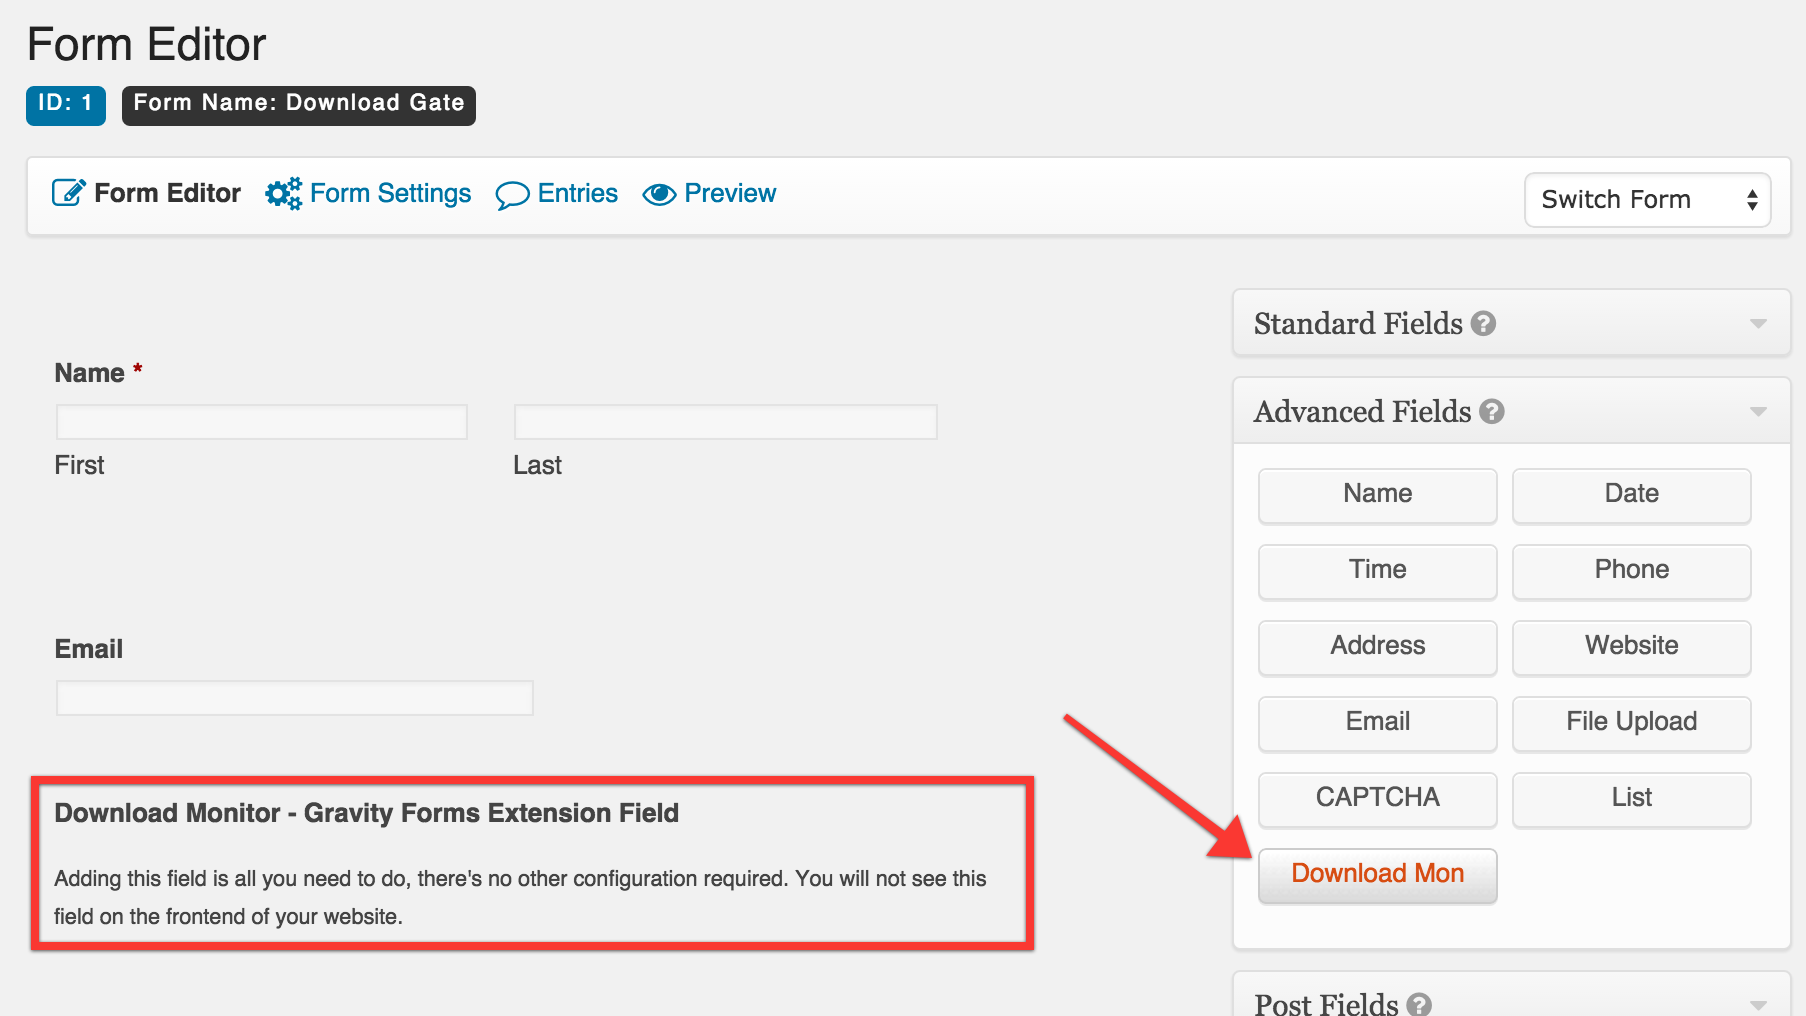 dlm-gravity-forms-add-field Tab Order Gravity Forms on other field conditional logic, checkout page example, file upload, shopping cart, validating against table, carrying over field input, list field, which tables, table view,